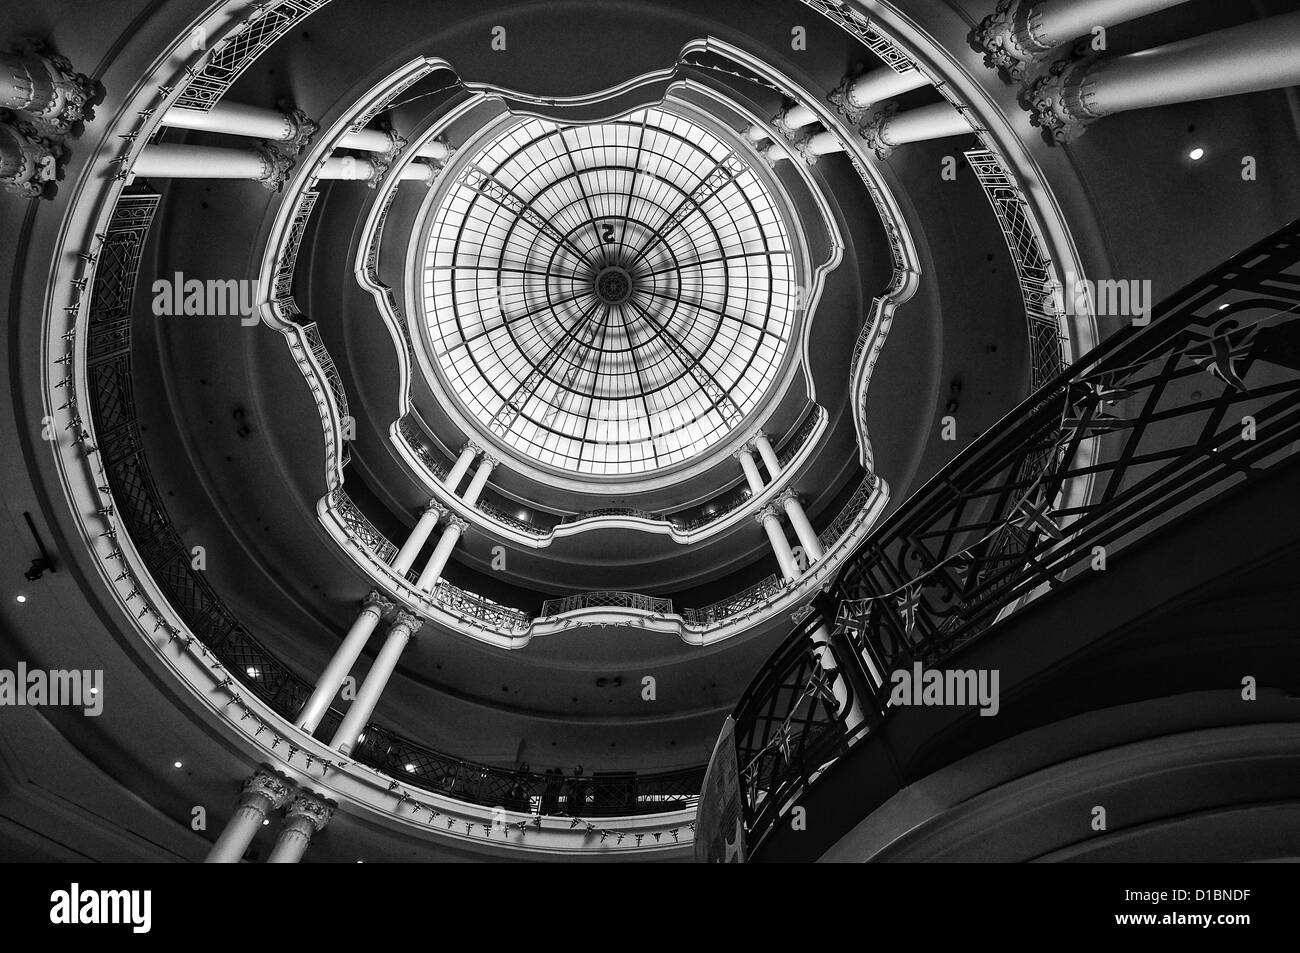 Central area and main staircase inside Whiteleys department store - Stock Image